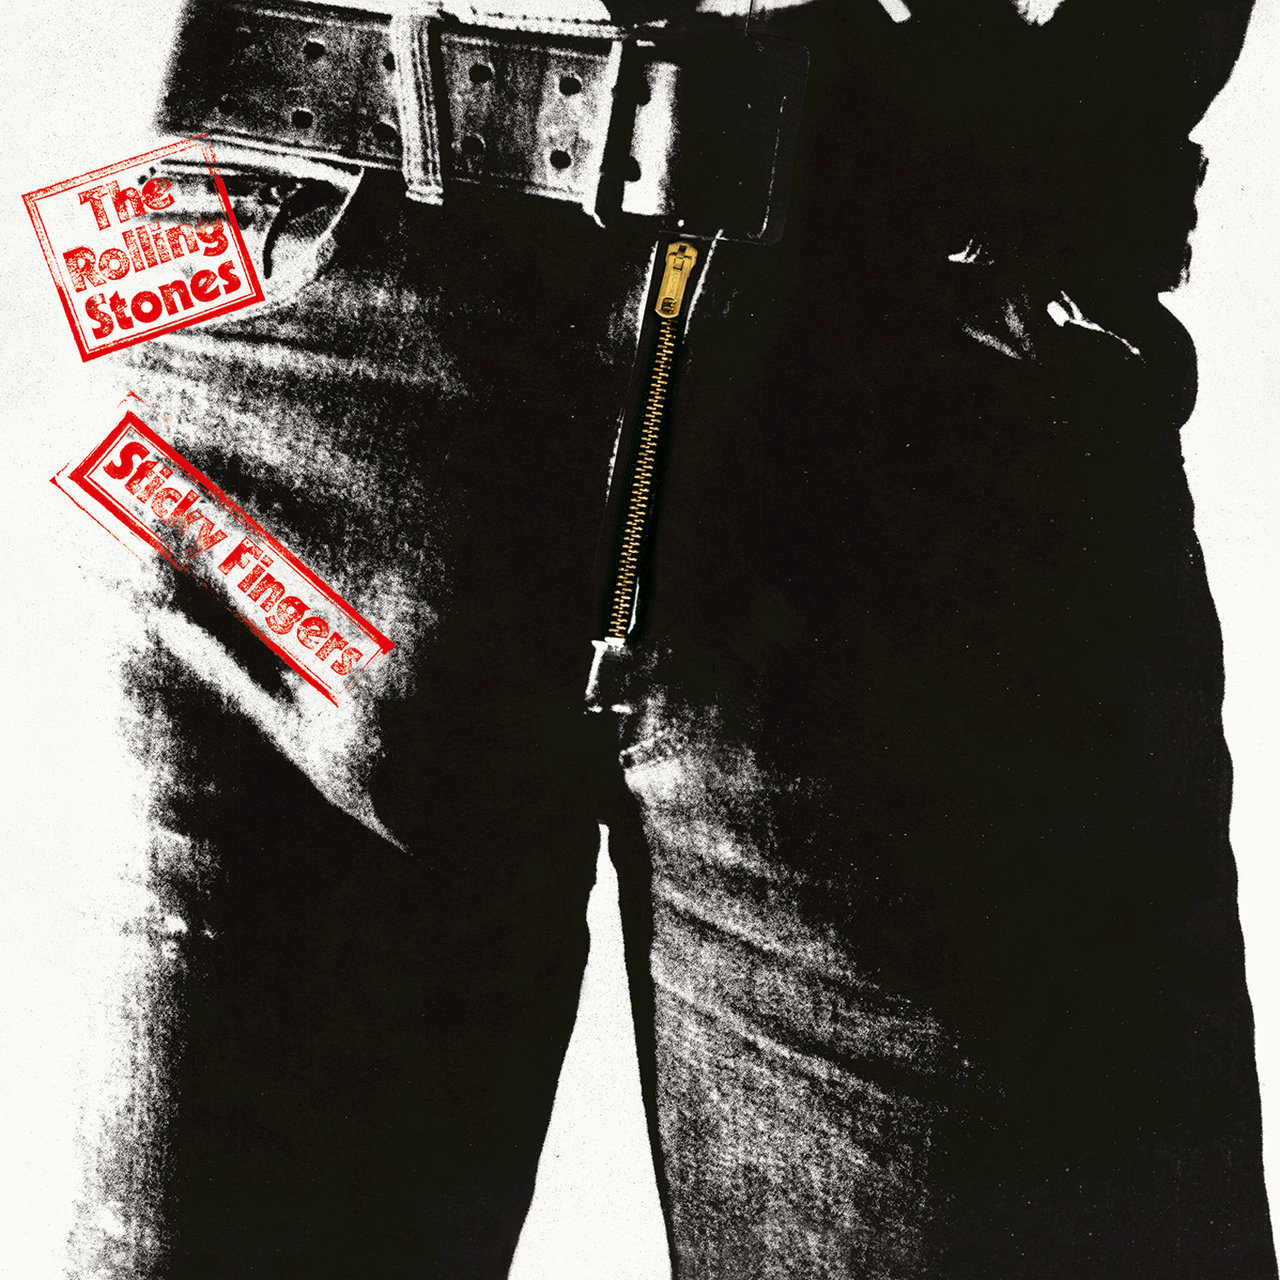 The Rolling Stones - Sticky Fingers [LP]